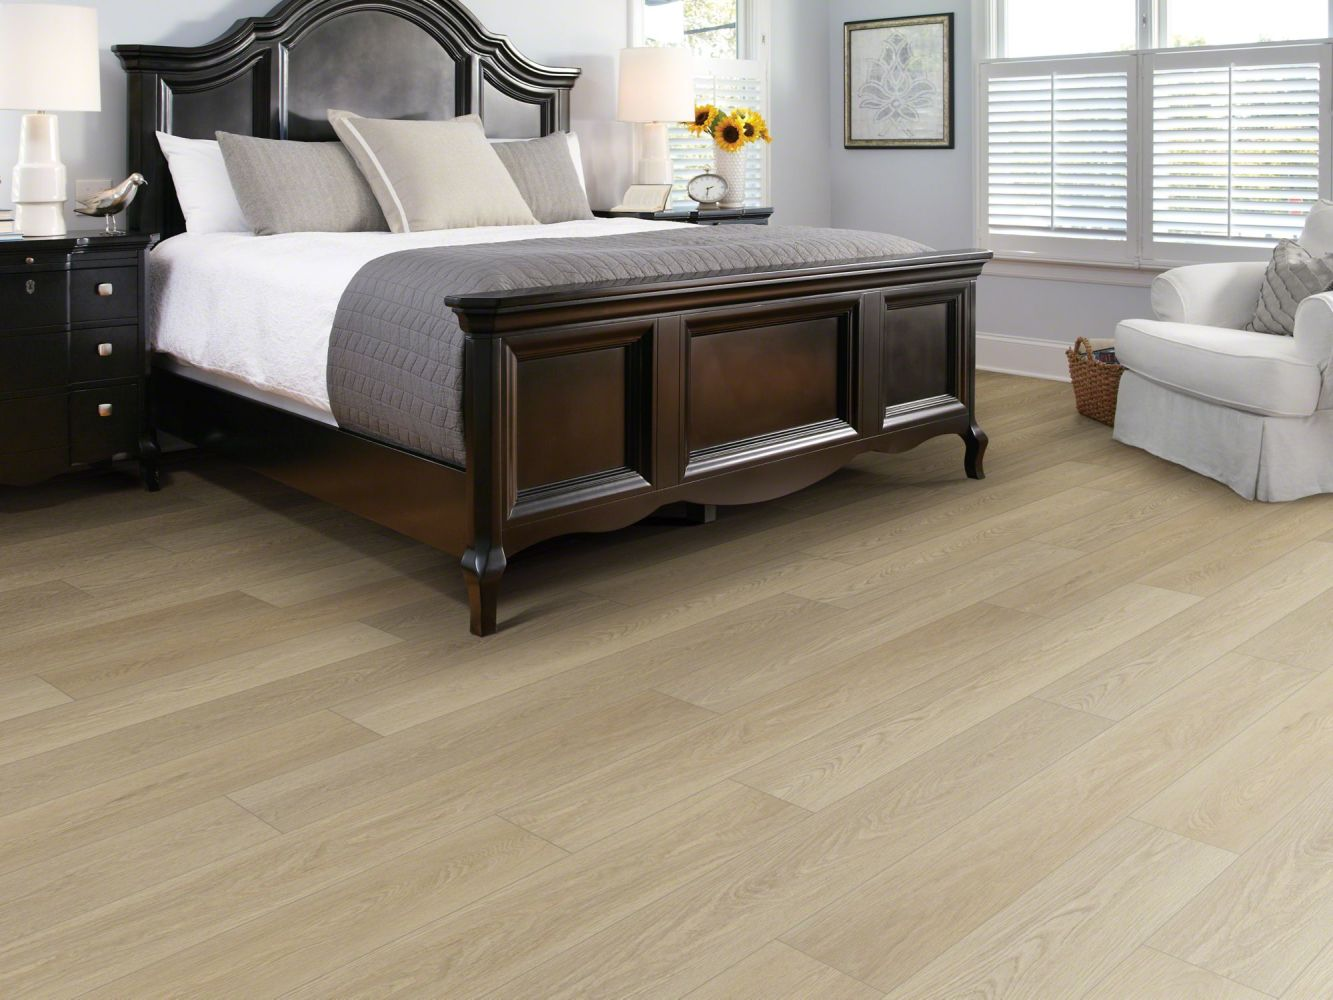 Shaw Floors Resilient Residential Distinction Plus Timeless Oak 00693_2045V